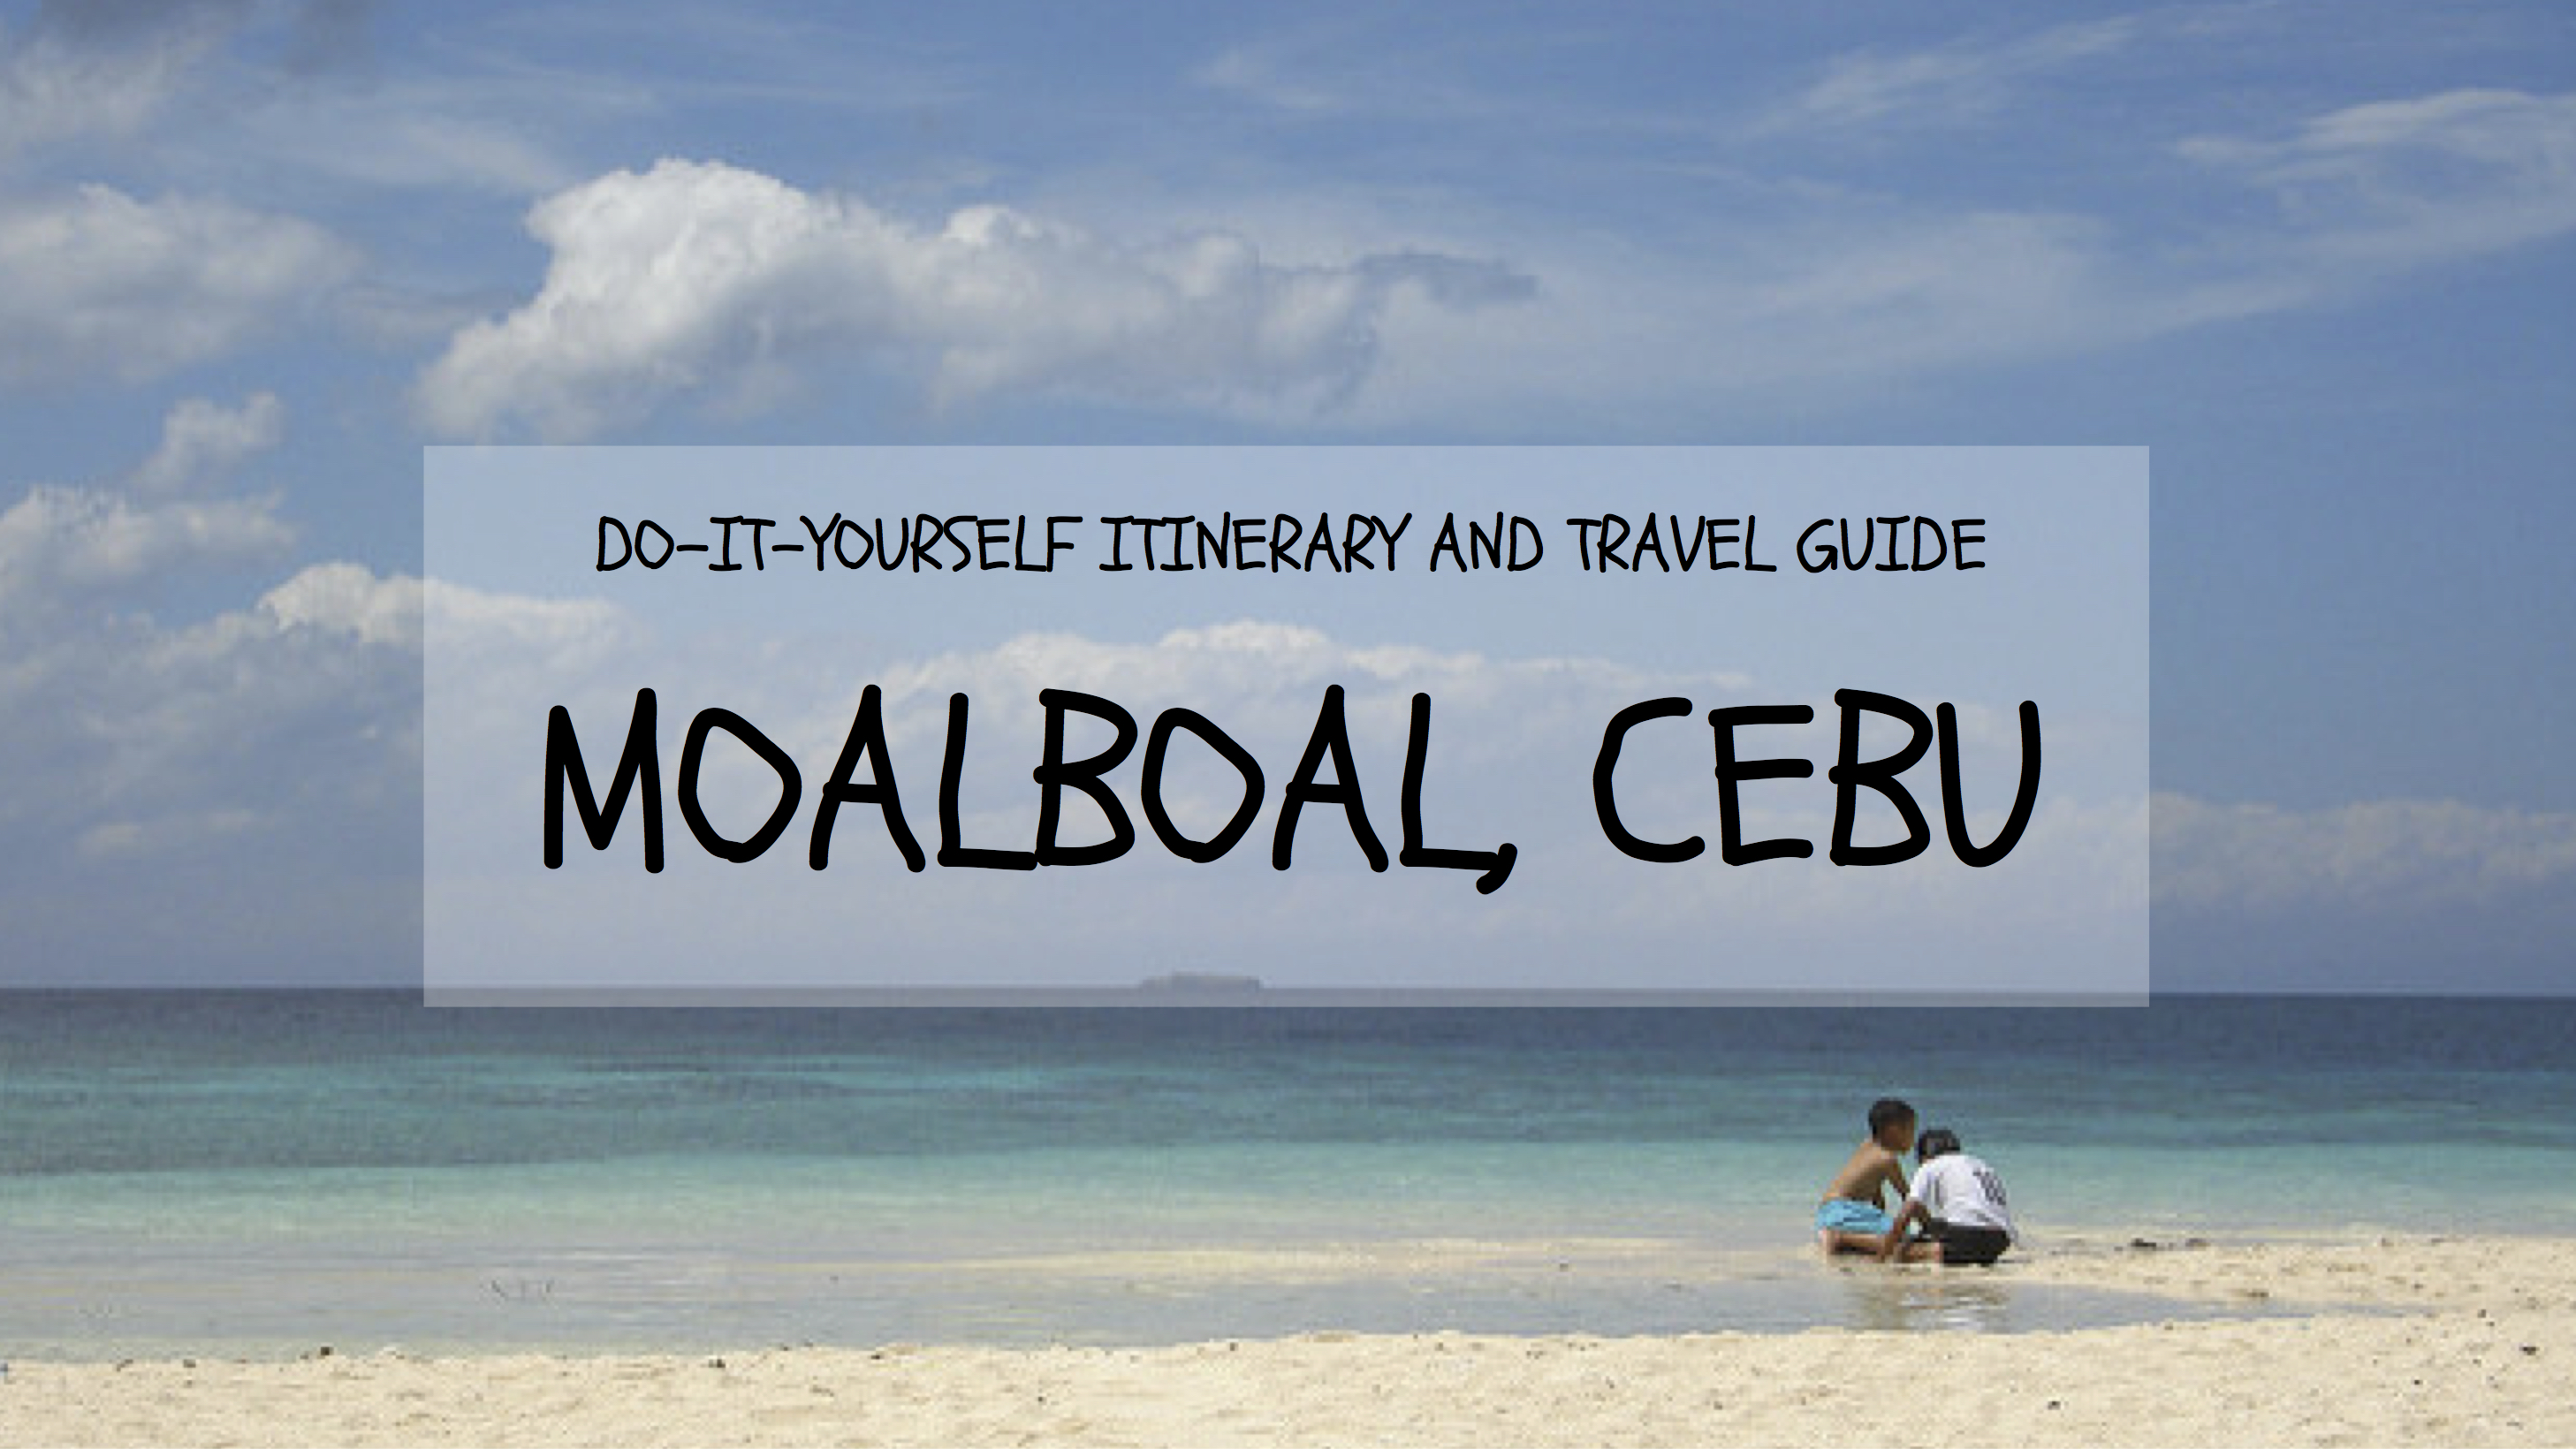 Diy Itinerary And Travel Guide Things To Do In Moalboal Cebu Iwander Iexperience Ikwento